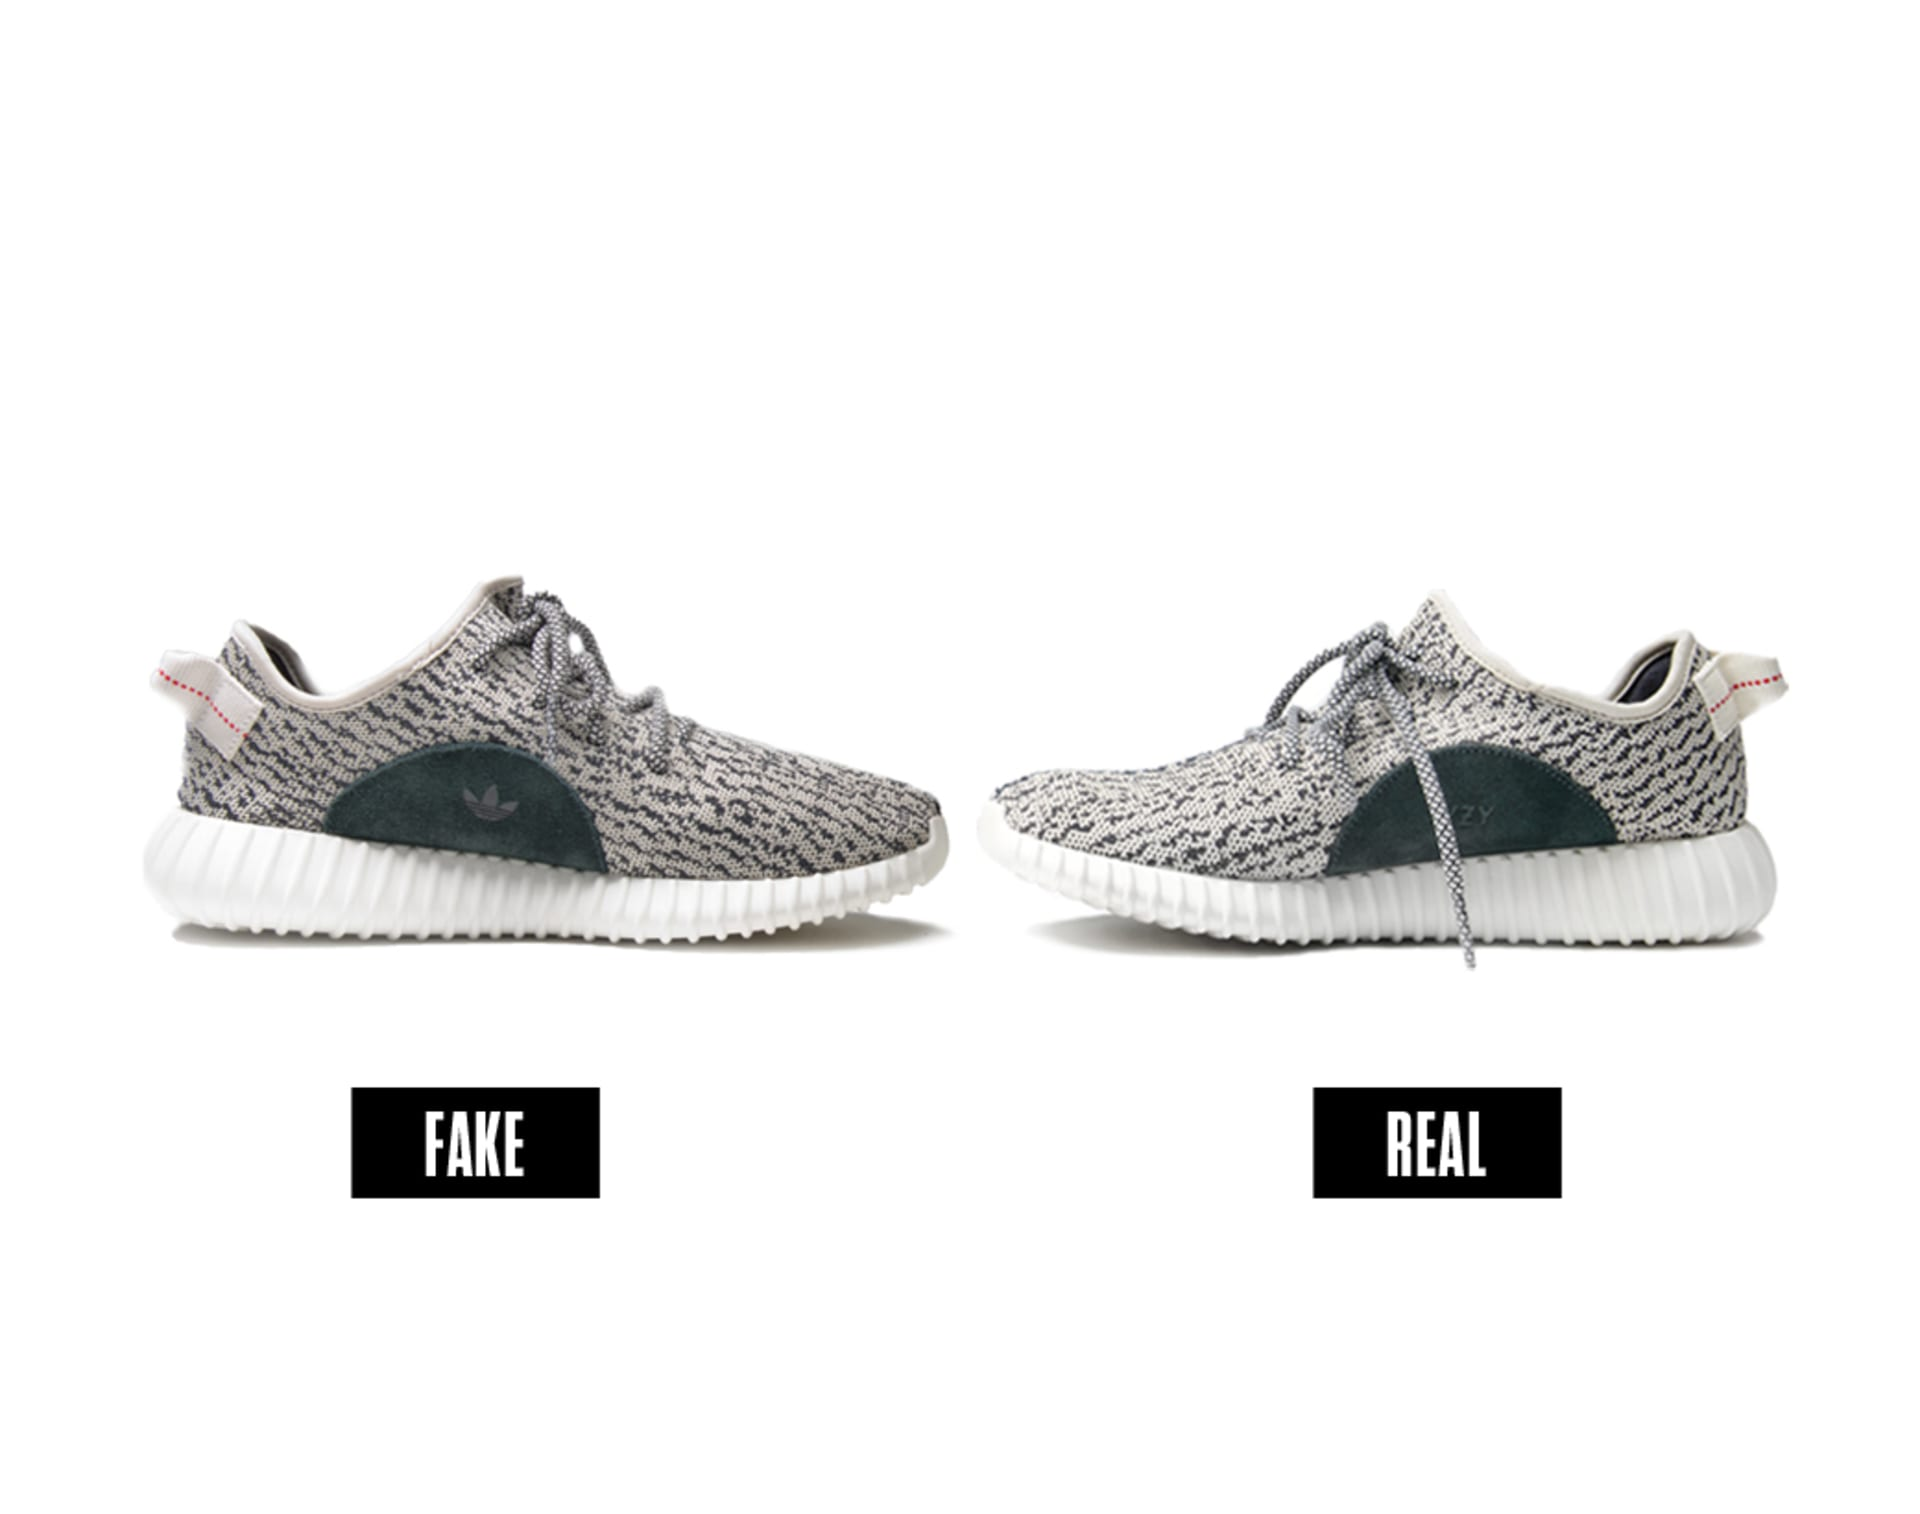 6ffa5bdda073 Fake vs. Real Yeezy 350 Boosts. Photo by Liz Barclay.